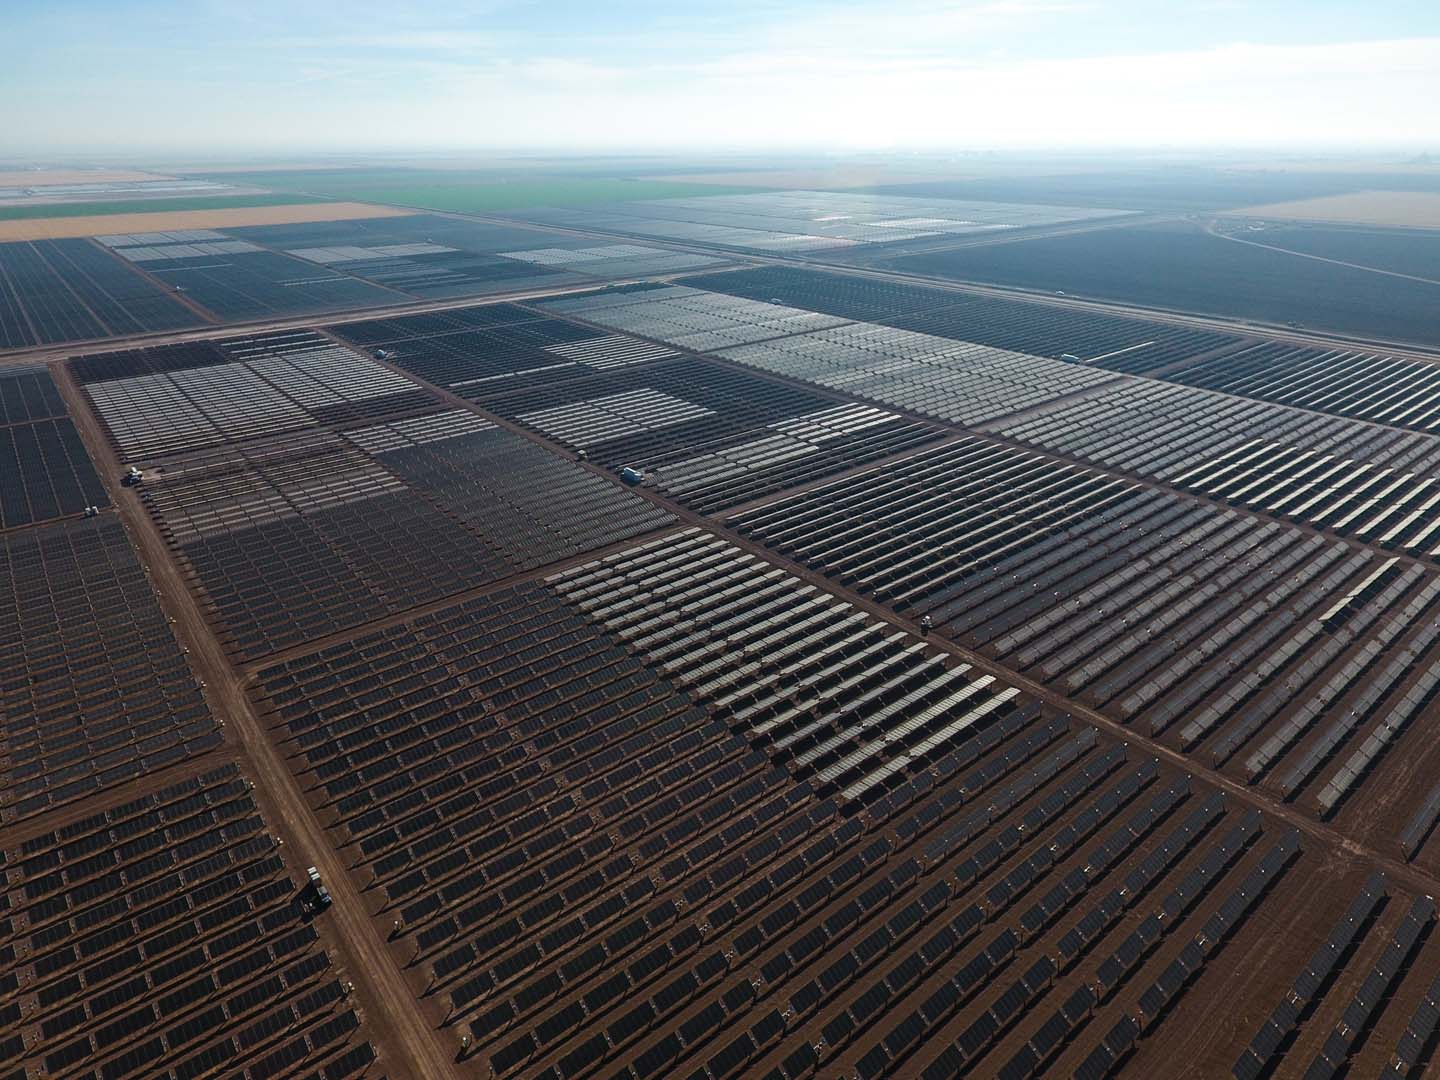 Solar Frontier Americas held a ribbon-cutting ceremony for Midway I & II solar projects on 12 December. Source: Solar Frontier